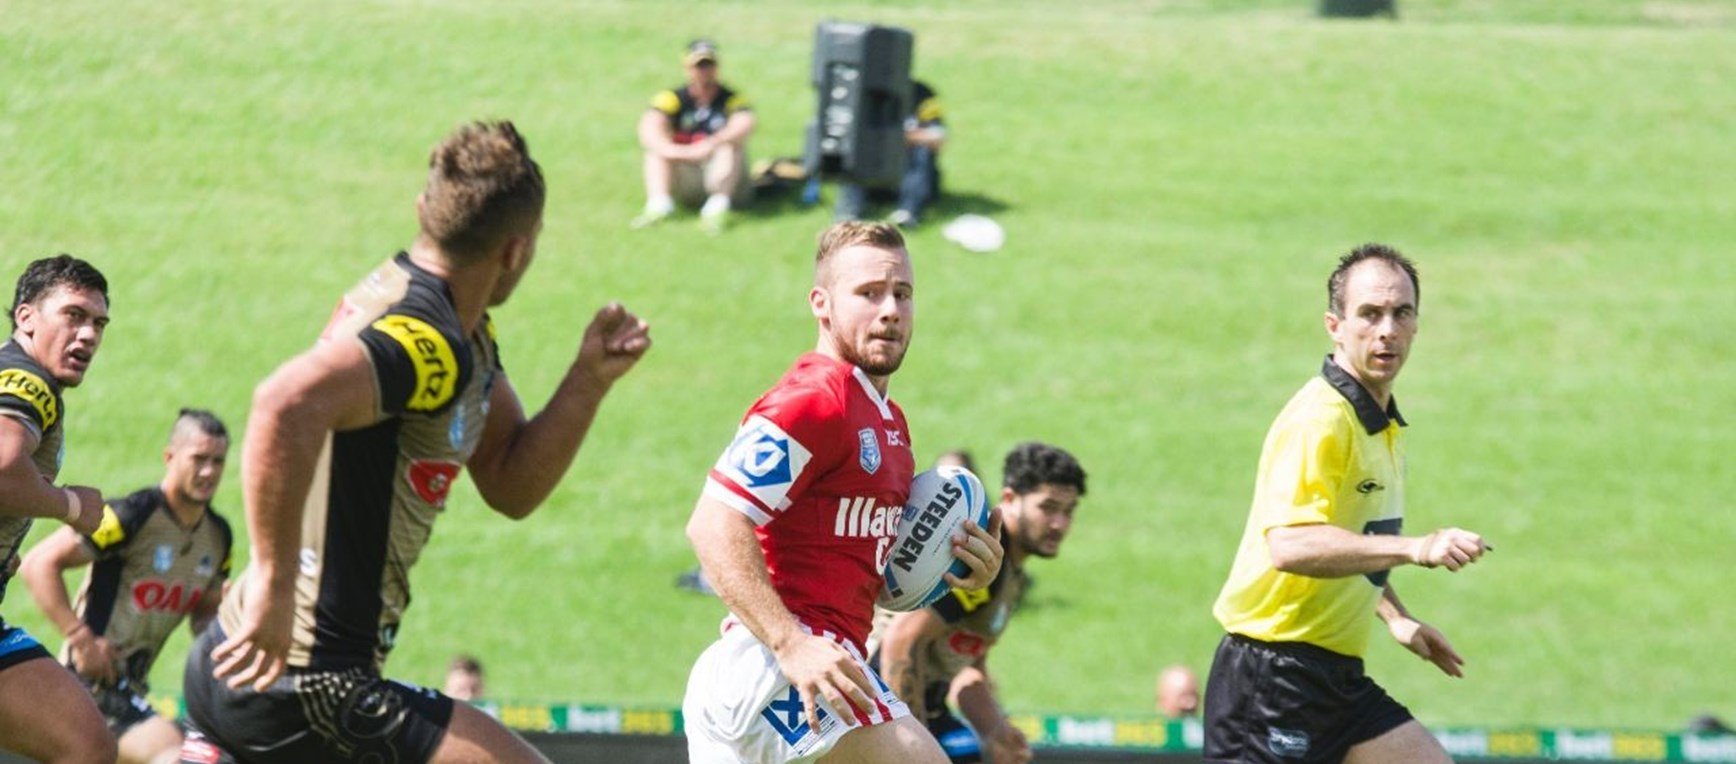 Gallery: NSW Cup Round 4 v Penrith Panthers